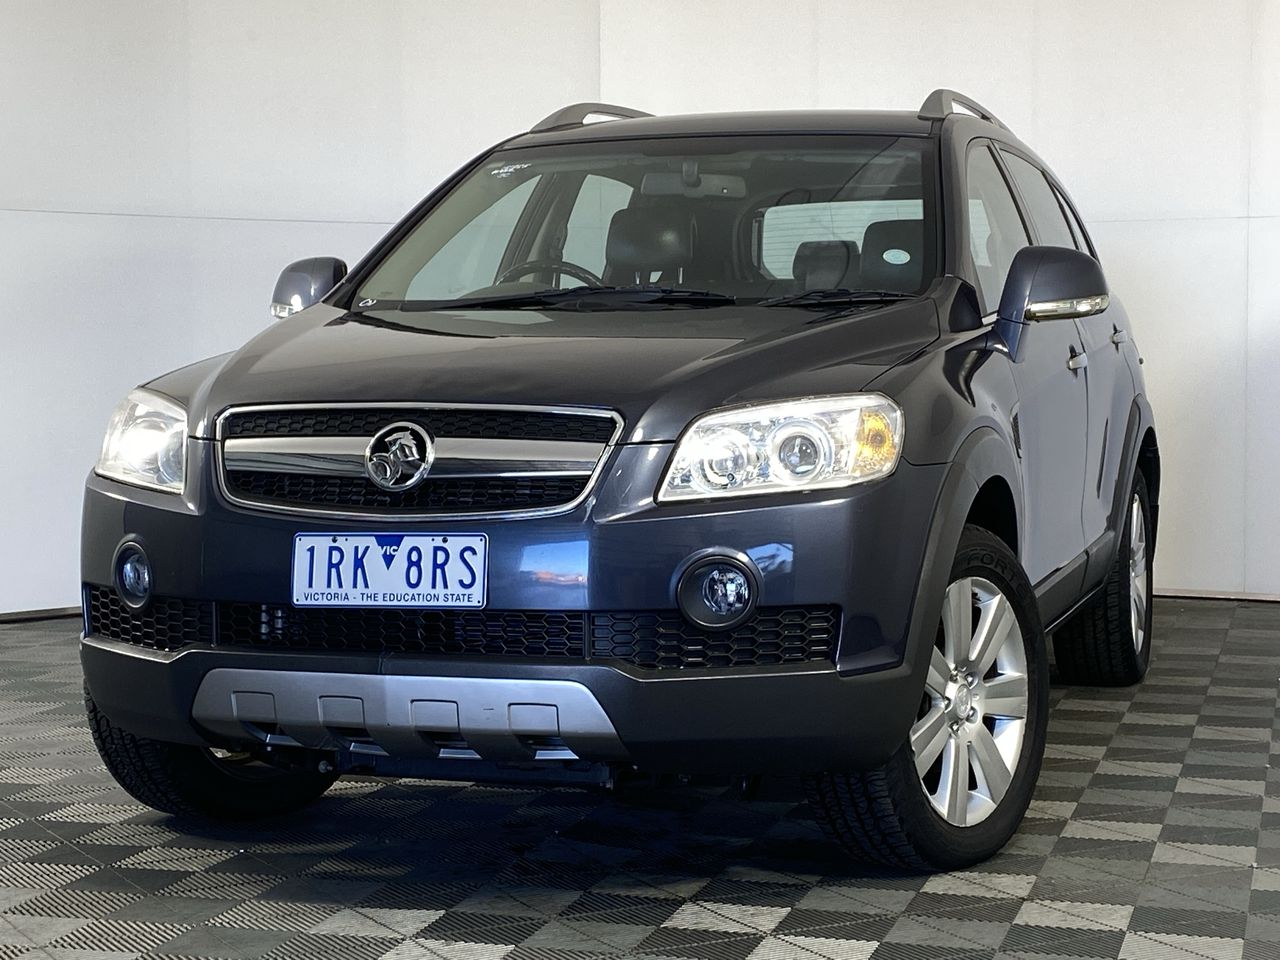 2009 Holden Captiva LX (4x4) CG Turbo Diesel Automatic 7 Seats Wagon